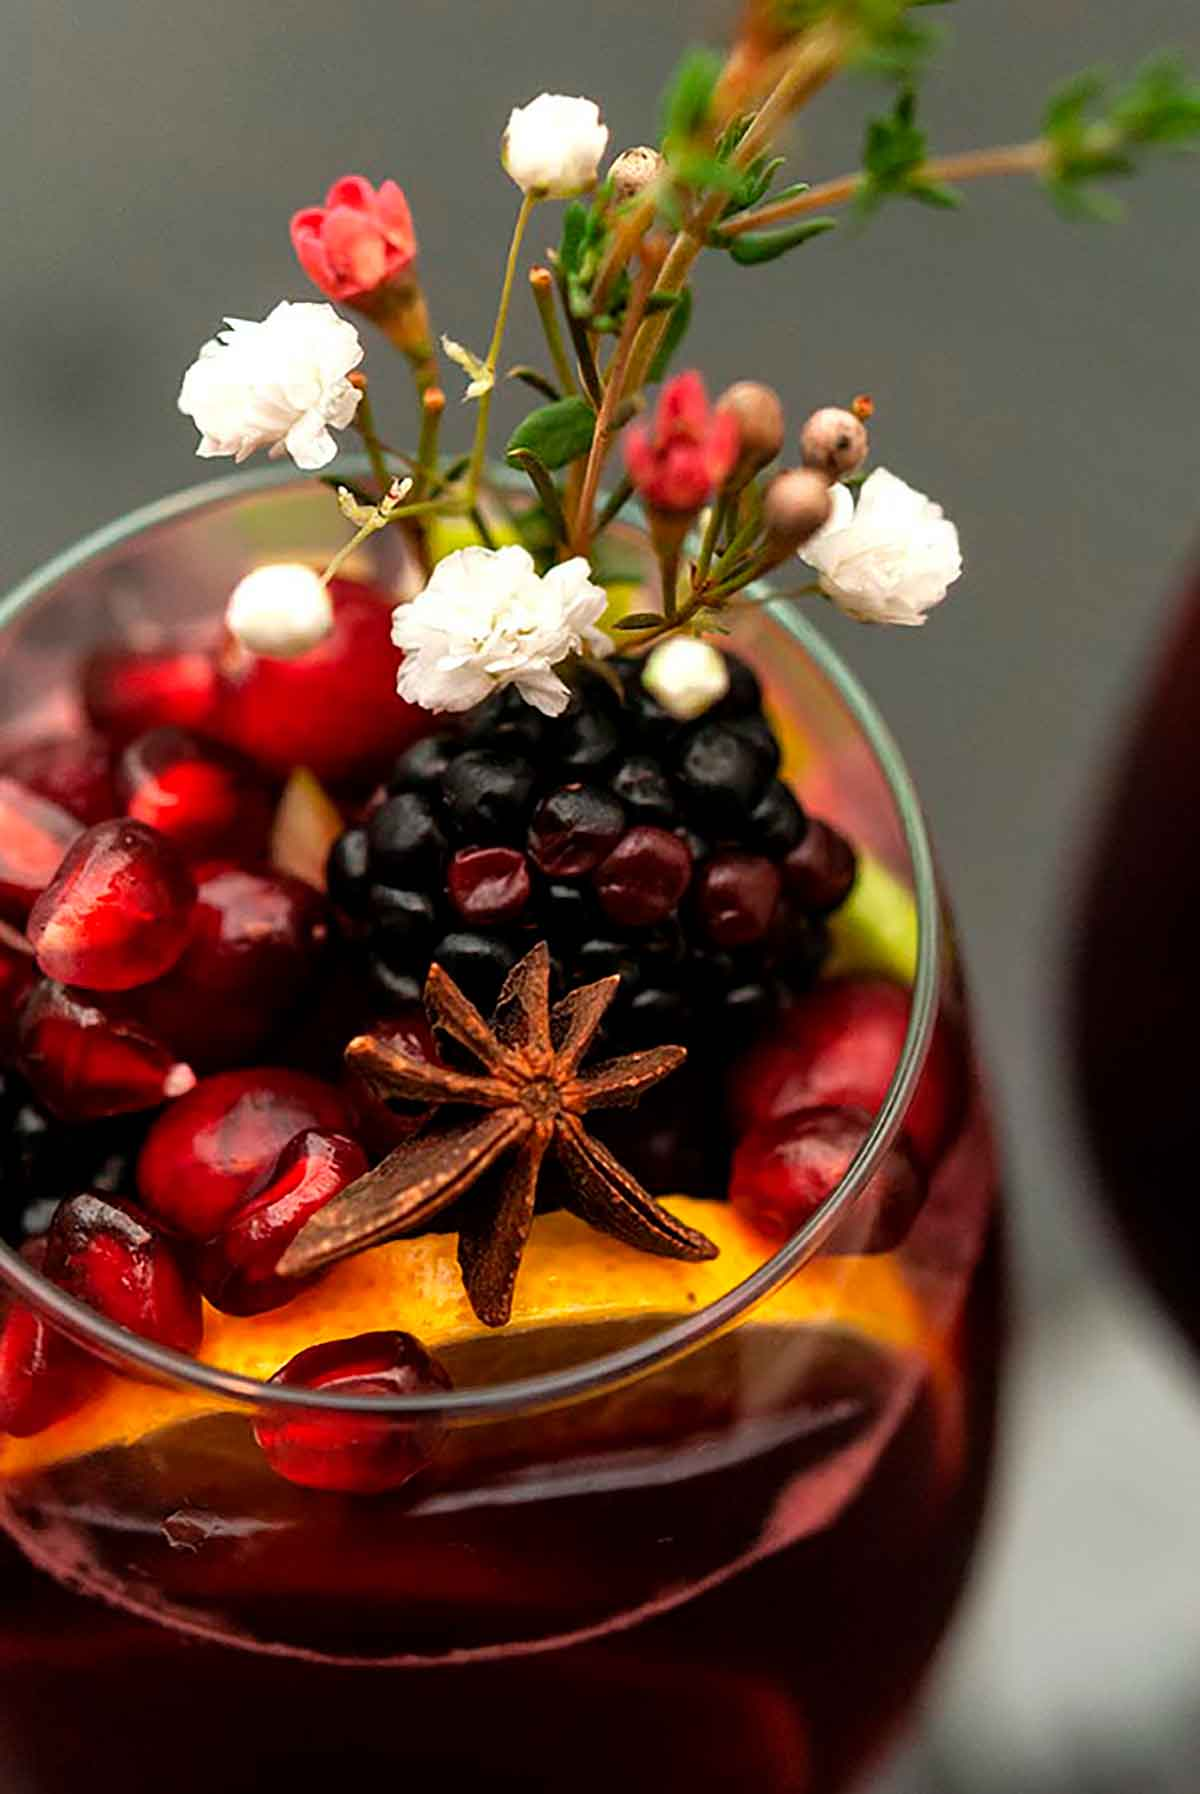 A glass of sangria garnished with fruits, flowers, herbs and star anise on a dark table.